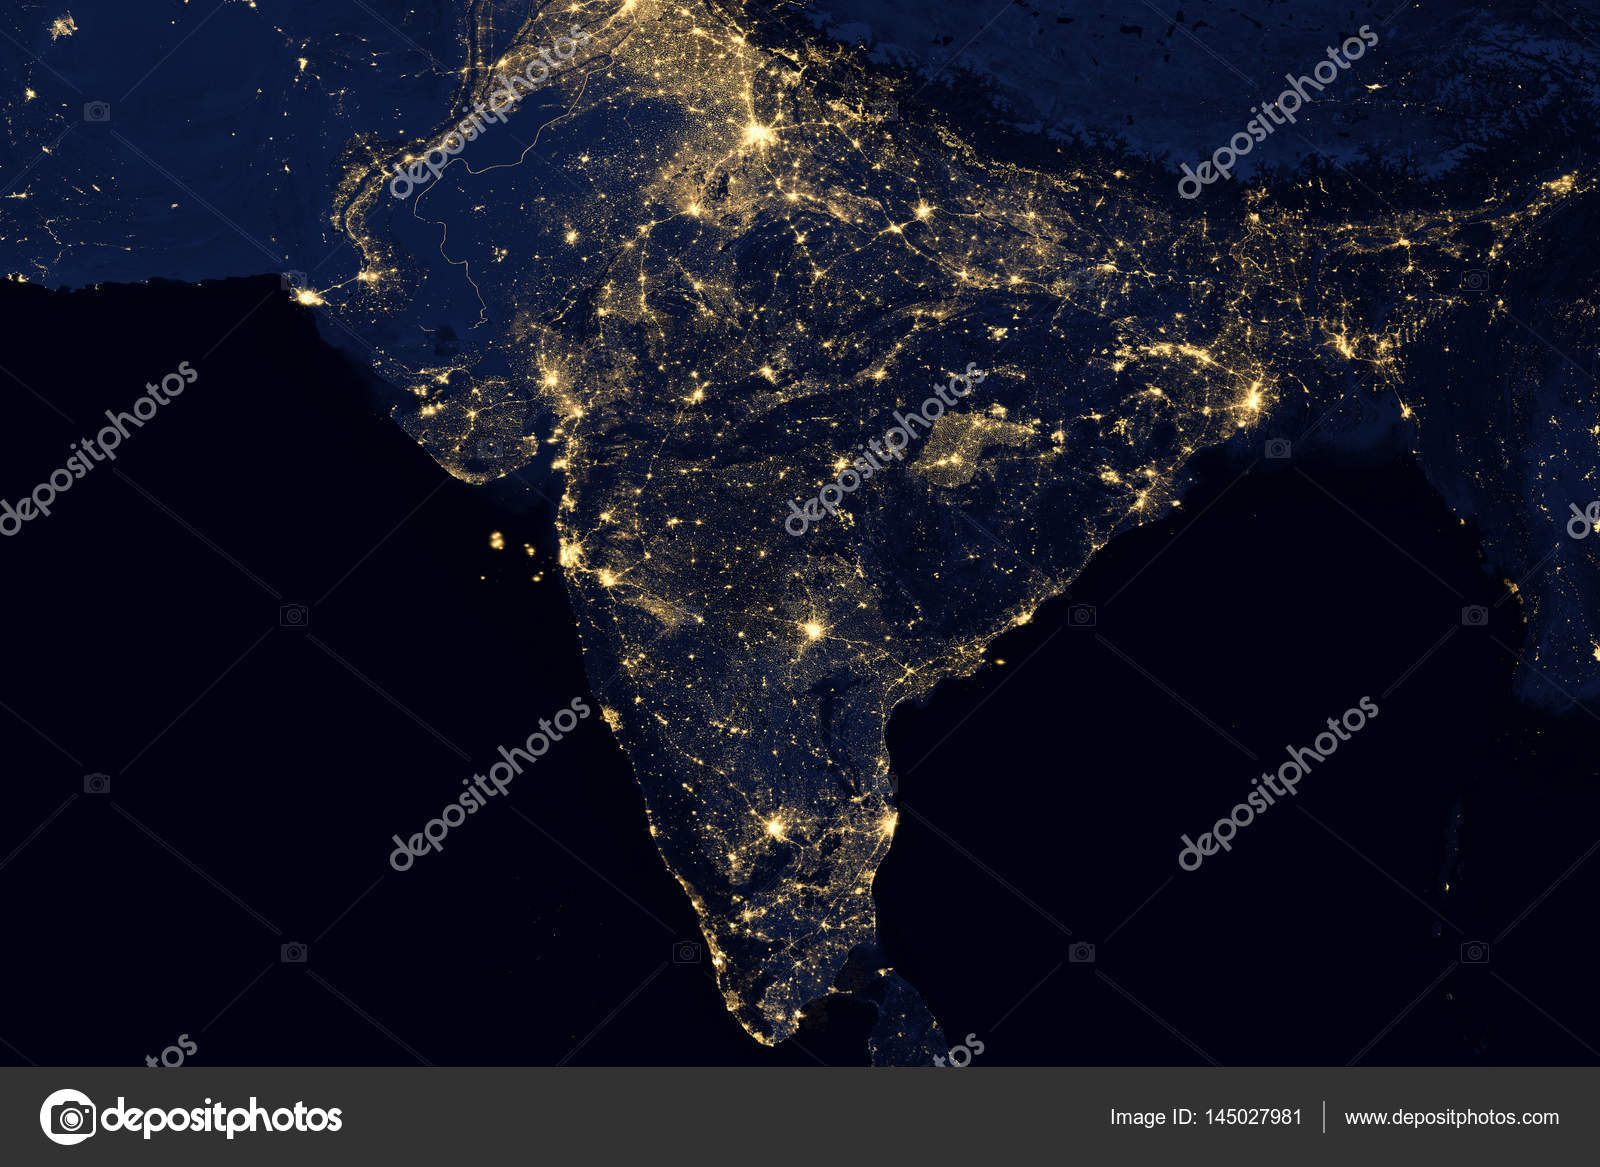 City lights on world map india stock photo nasaage 145027981 city lights on world map india elements of this image are furnished by nasa photo by nasaage gumiabroncs Images